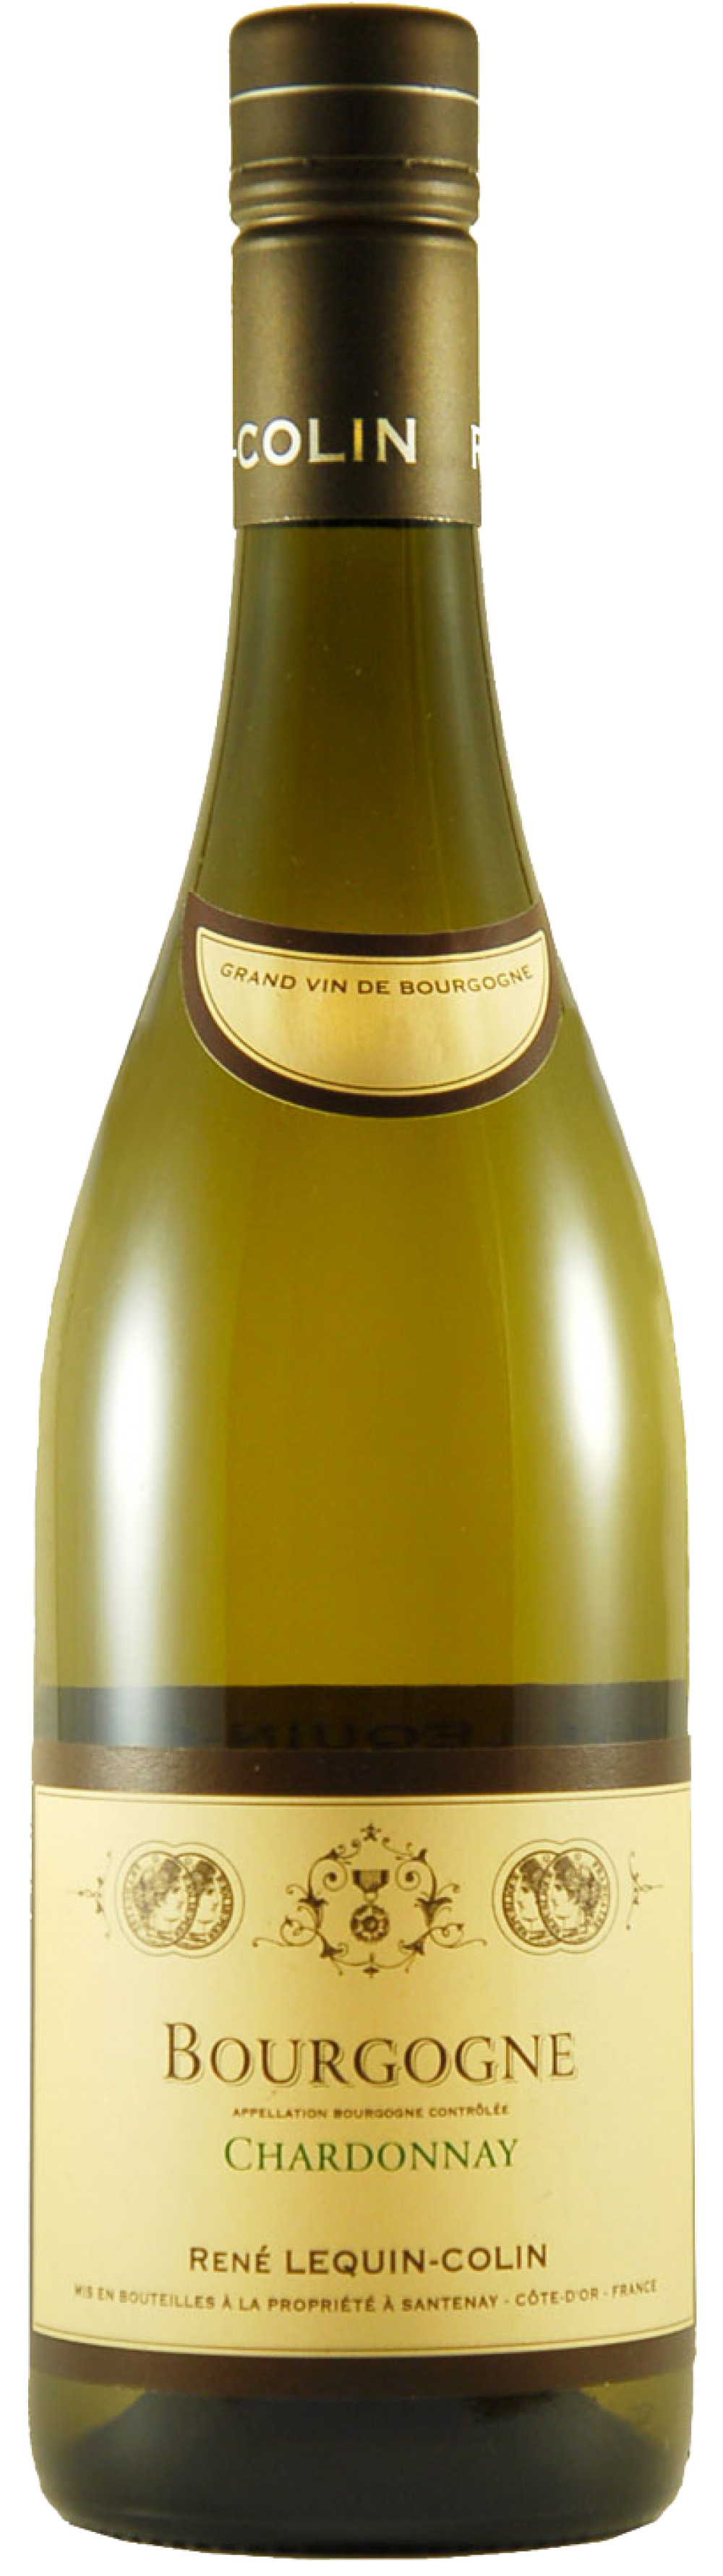 files/images/wines/France/rene-lequin-colin-burgundy/chardonnay_2014 .png